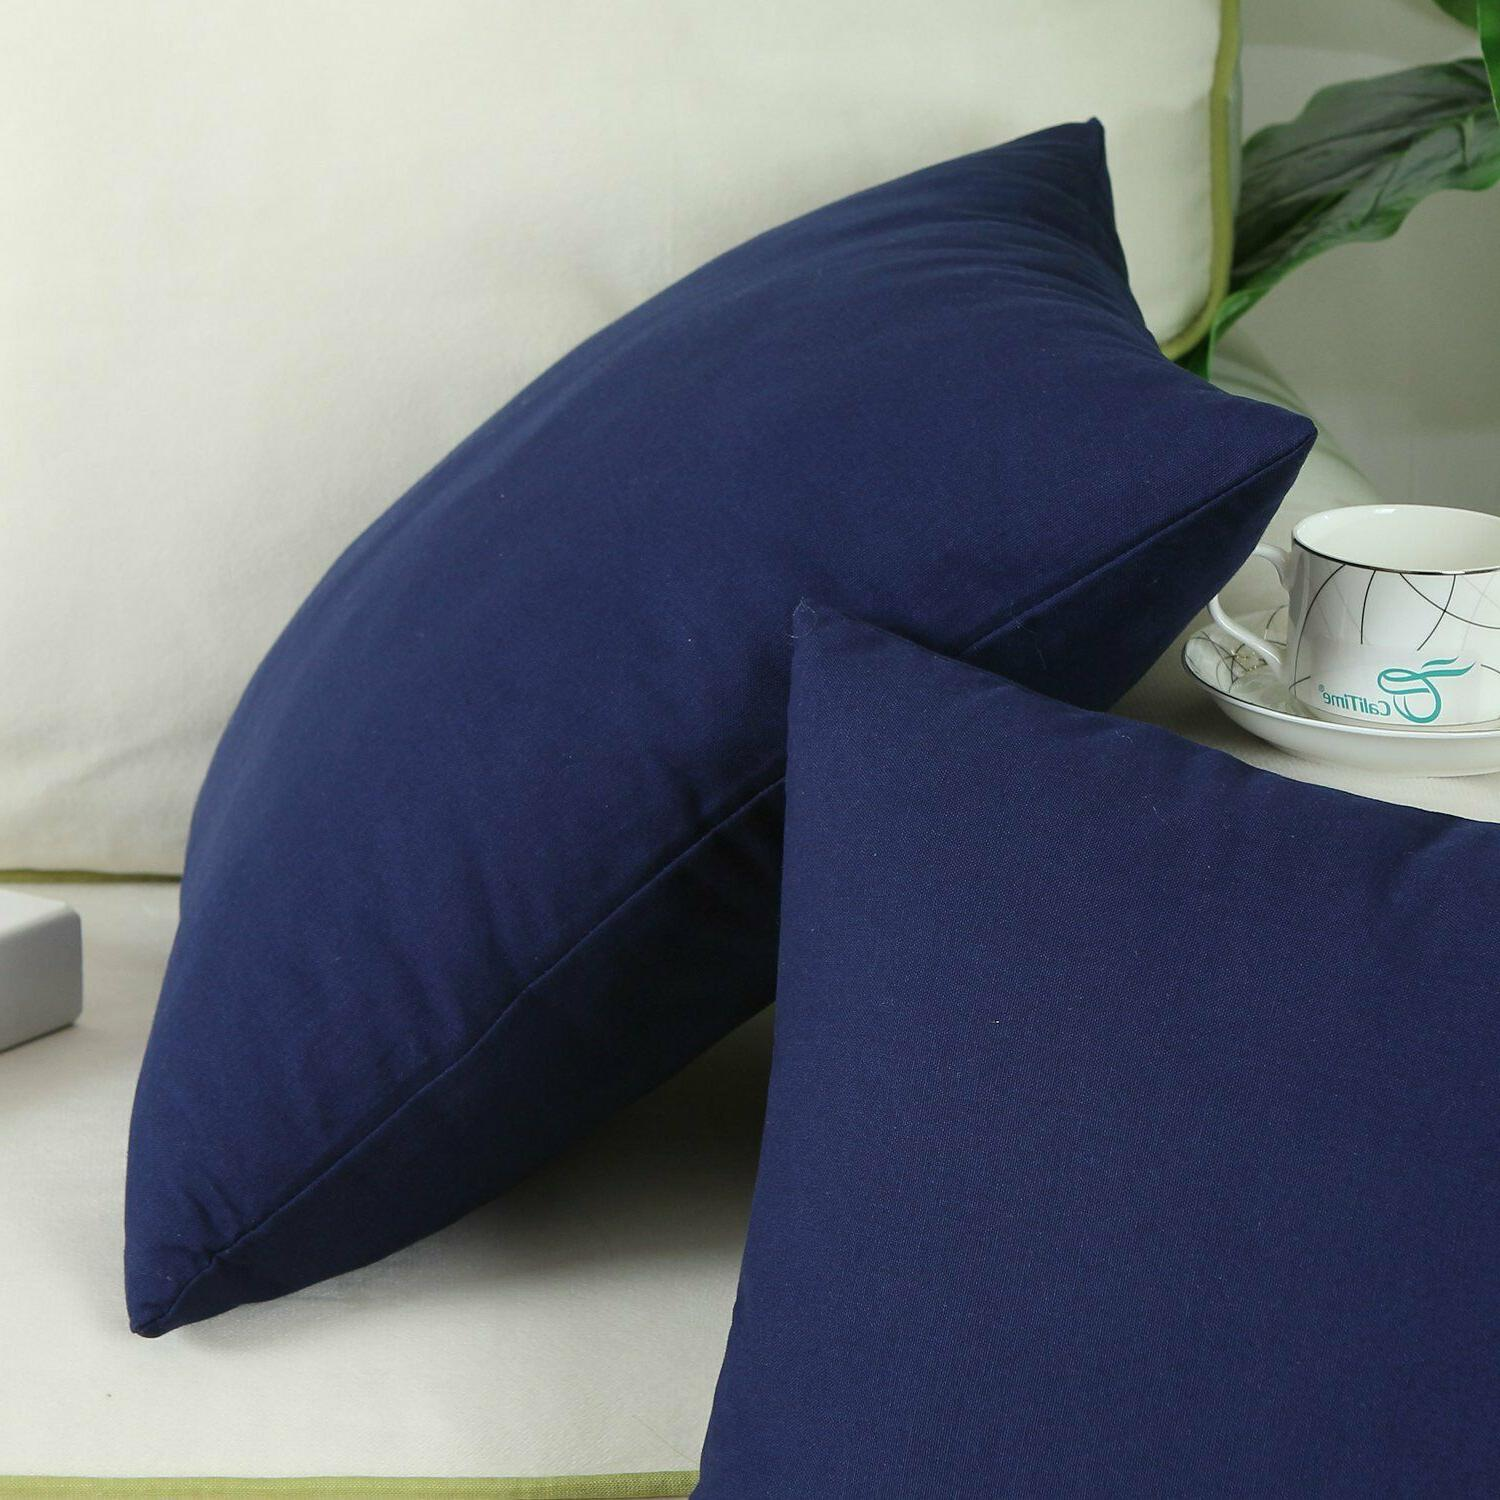 CaliTime Throw Cases Couch Bed, Navy Blue